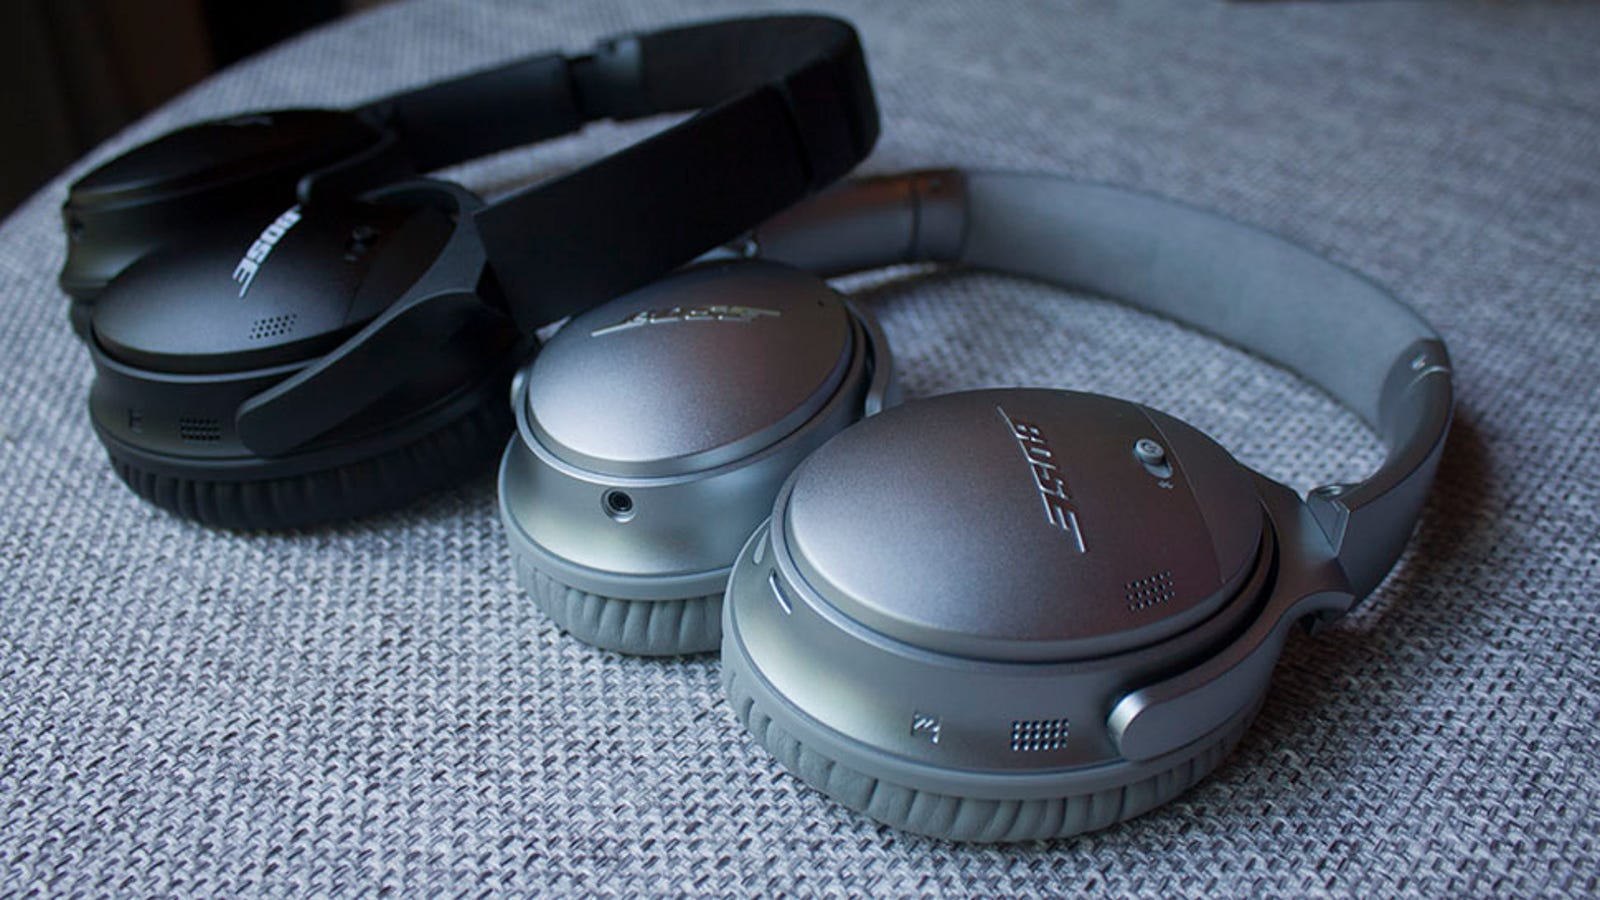 wireless headphones plantronics - Bose's Best Noise-Canceling Headphones Finally Go Wireless